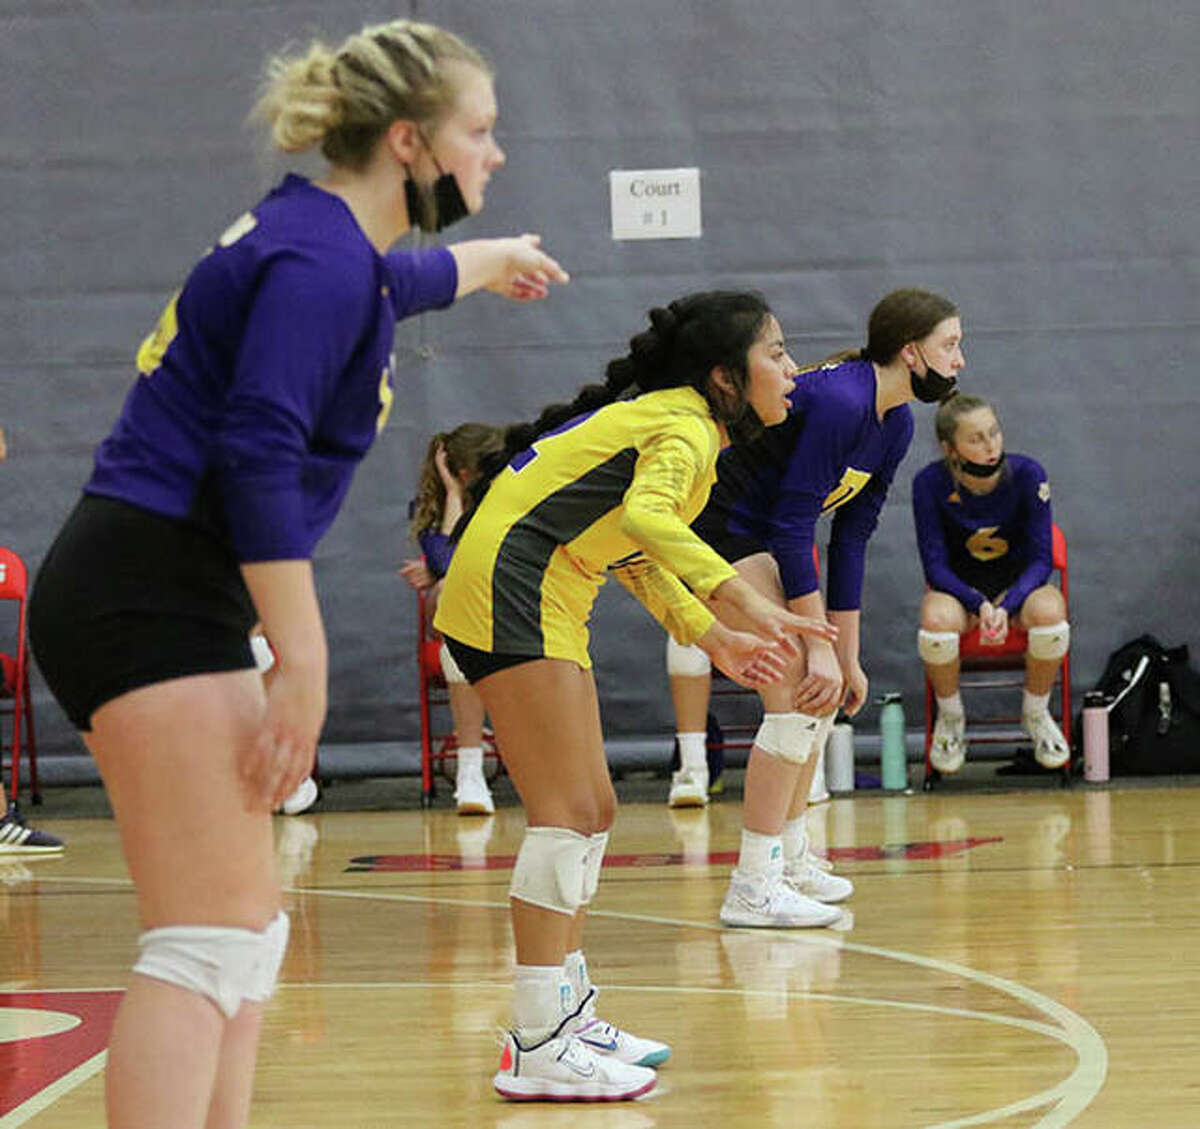 CM's back row with (from left) Emily Williams, Ella Middleton and Lauren Dunlap await serve during a match in the Alton Tourney on Sept. 11 in Godfrey. On Tuesday, CM lost a MVC match to Waterloo in Bethalto.